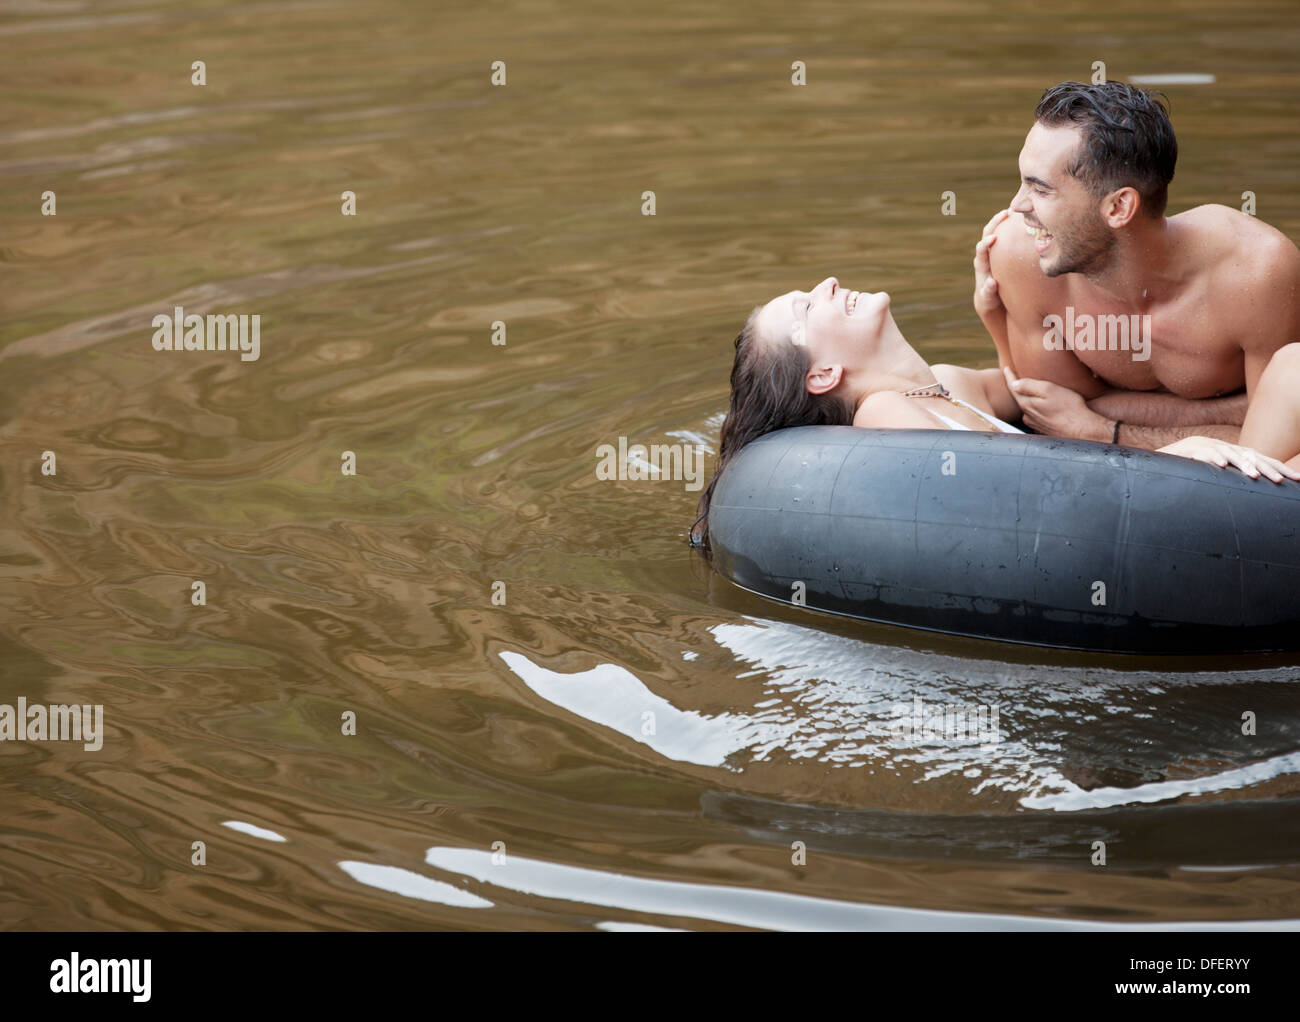 Couple playing in inner tube on lake - Stock Image